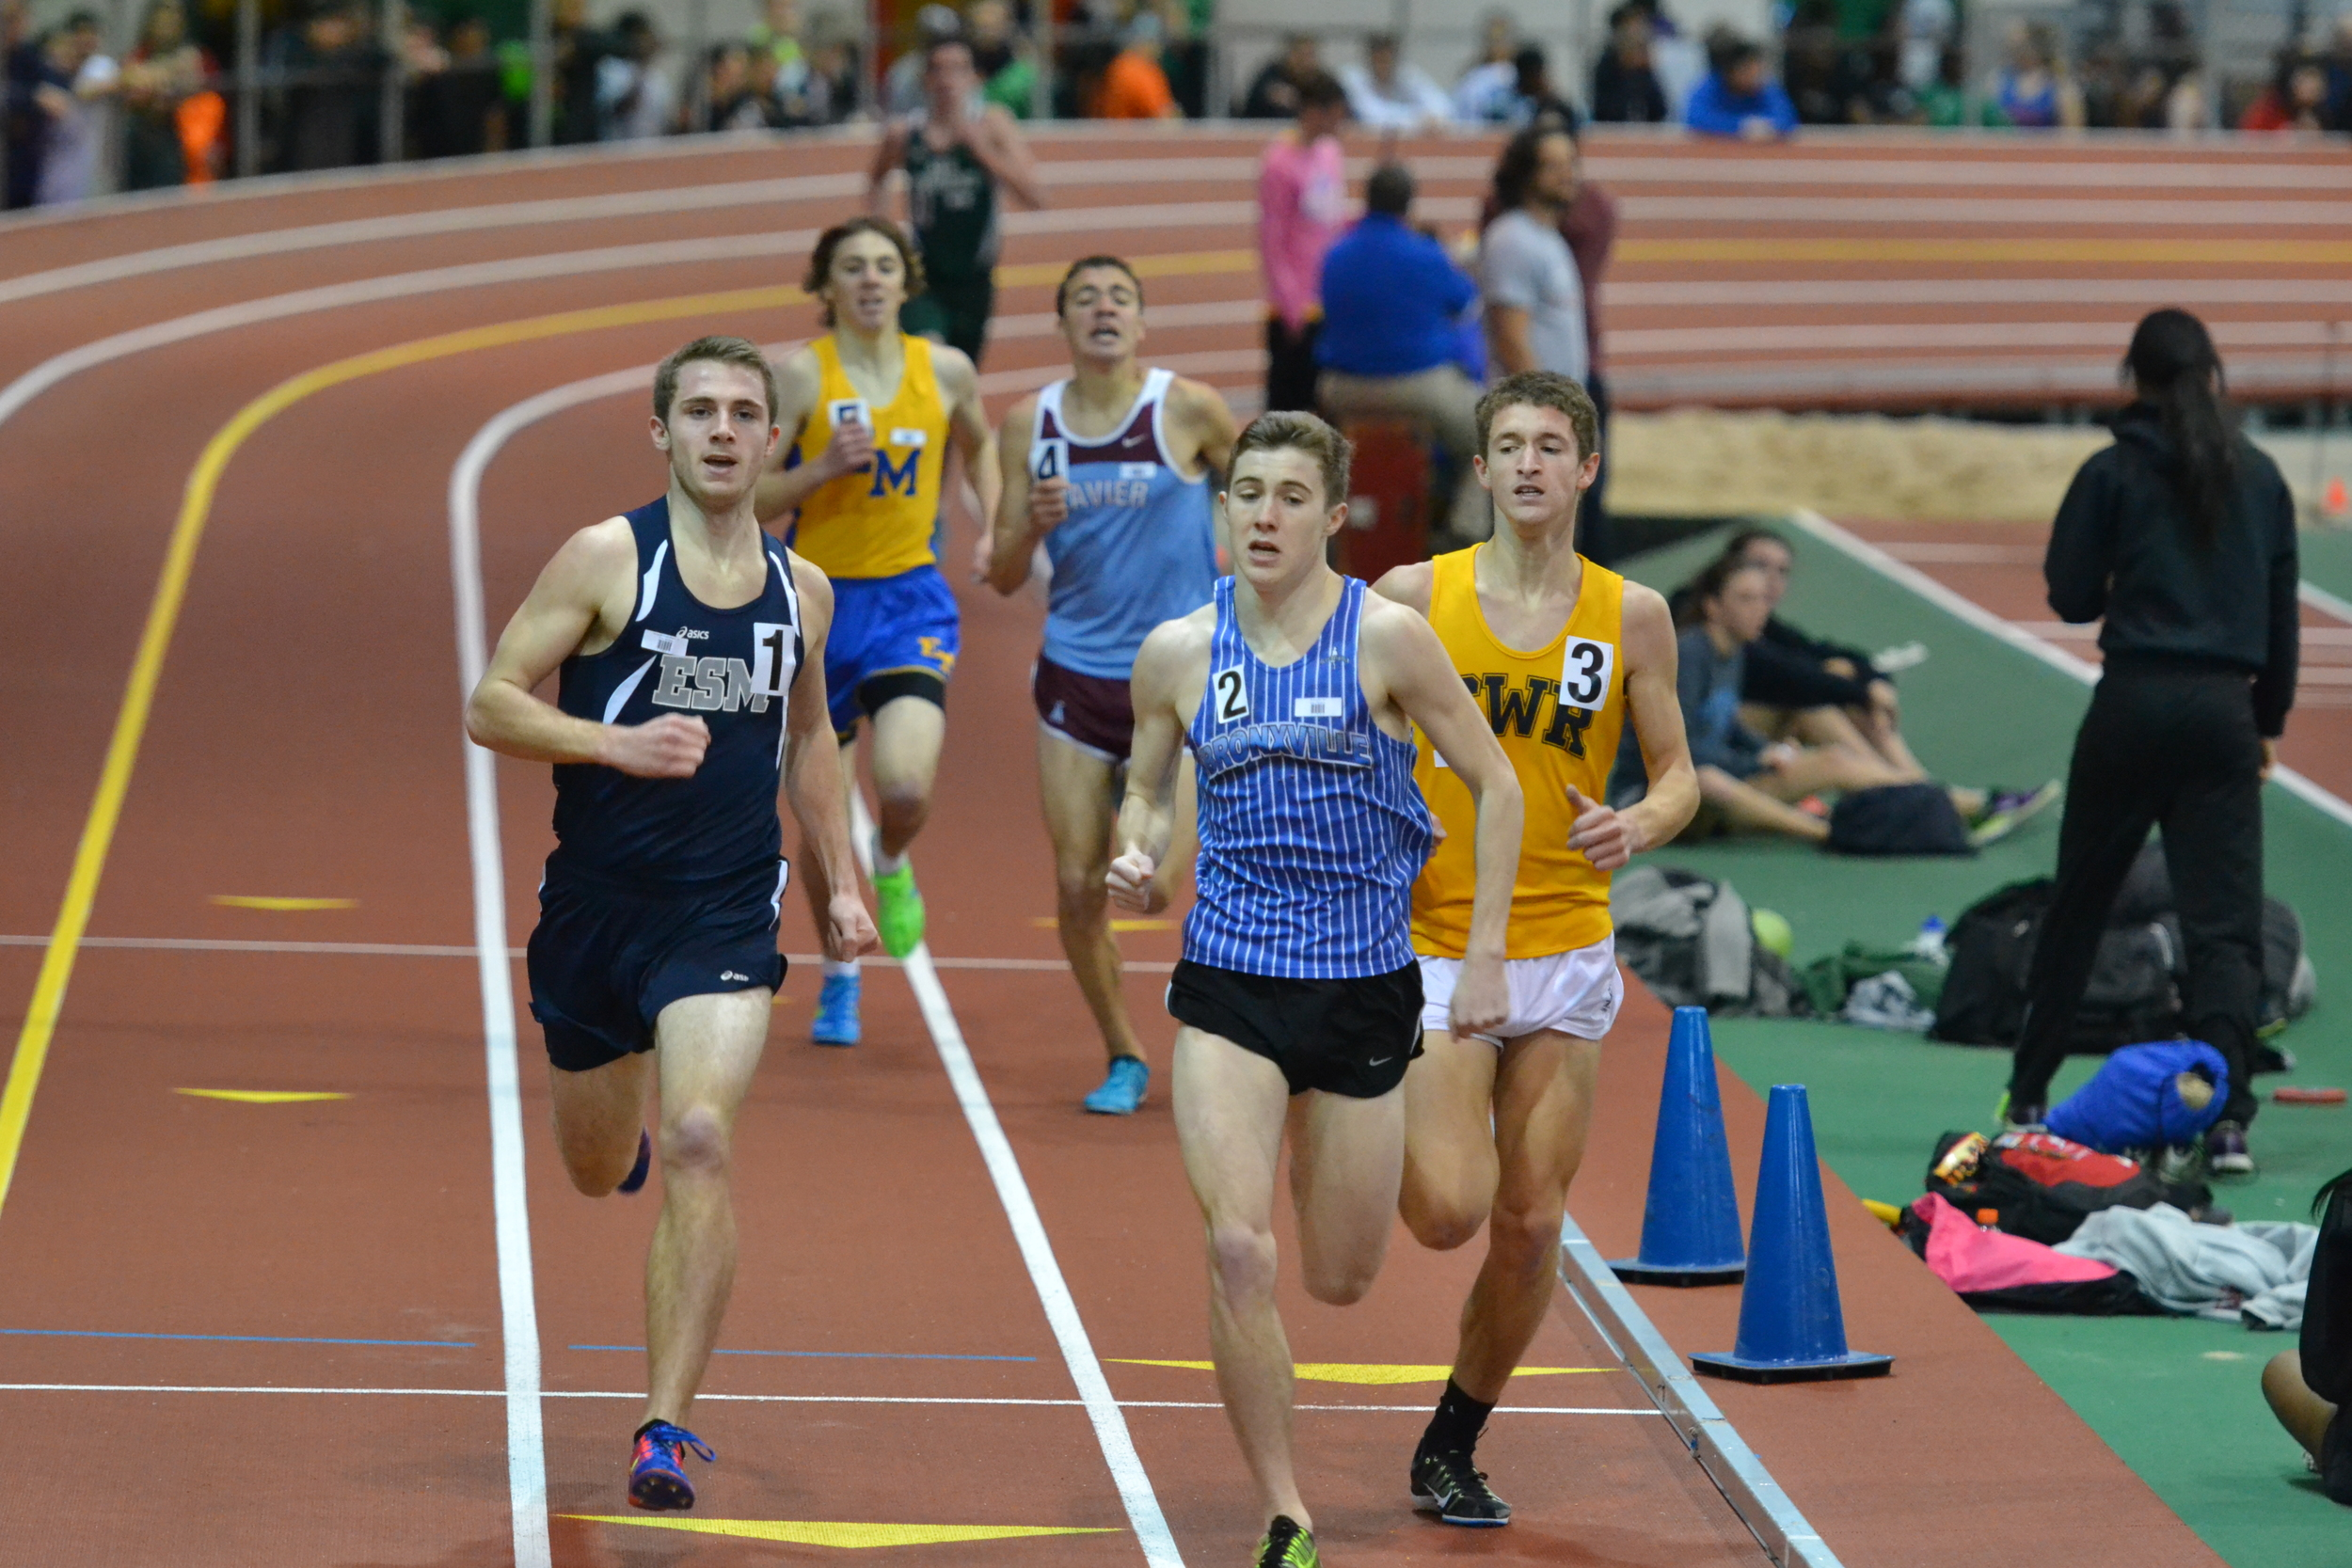 Johnny Flannery comes down the homestretch at The New Balance Track & Field Center at The Armory. Photo/Kyle Brazeil